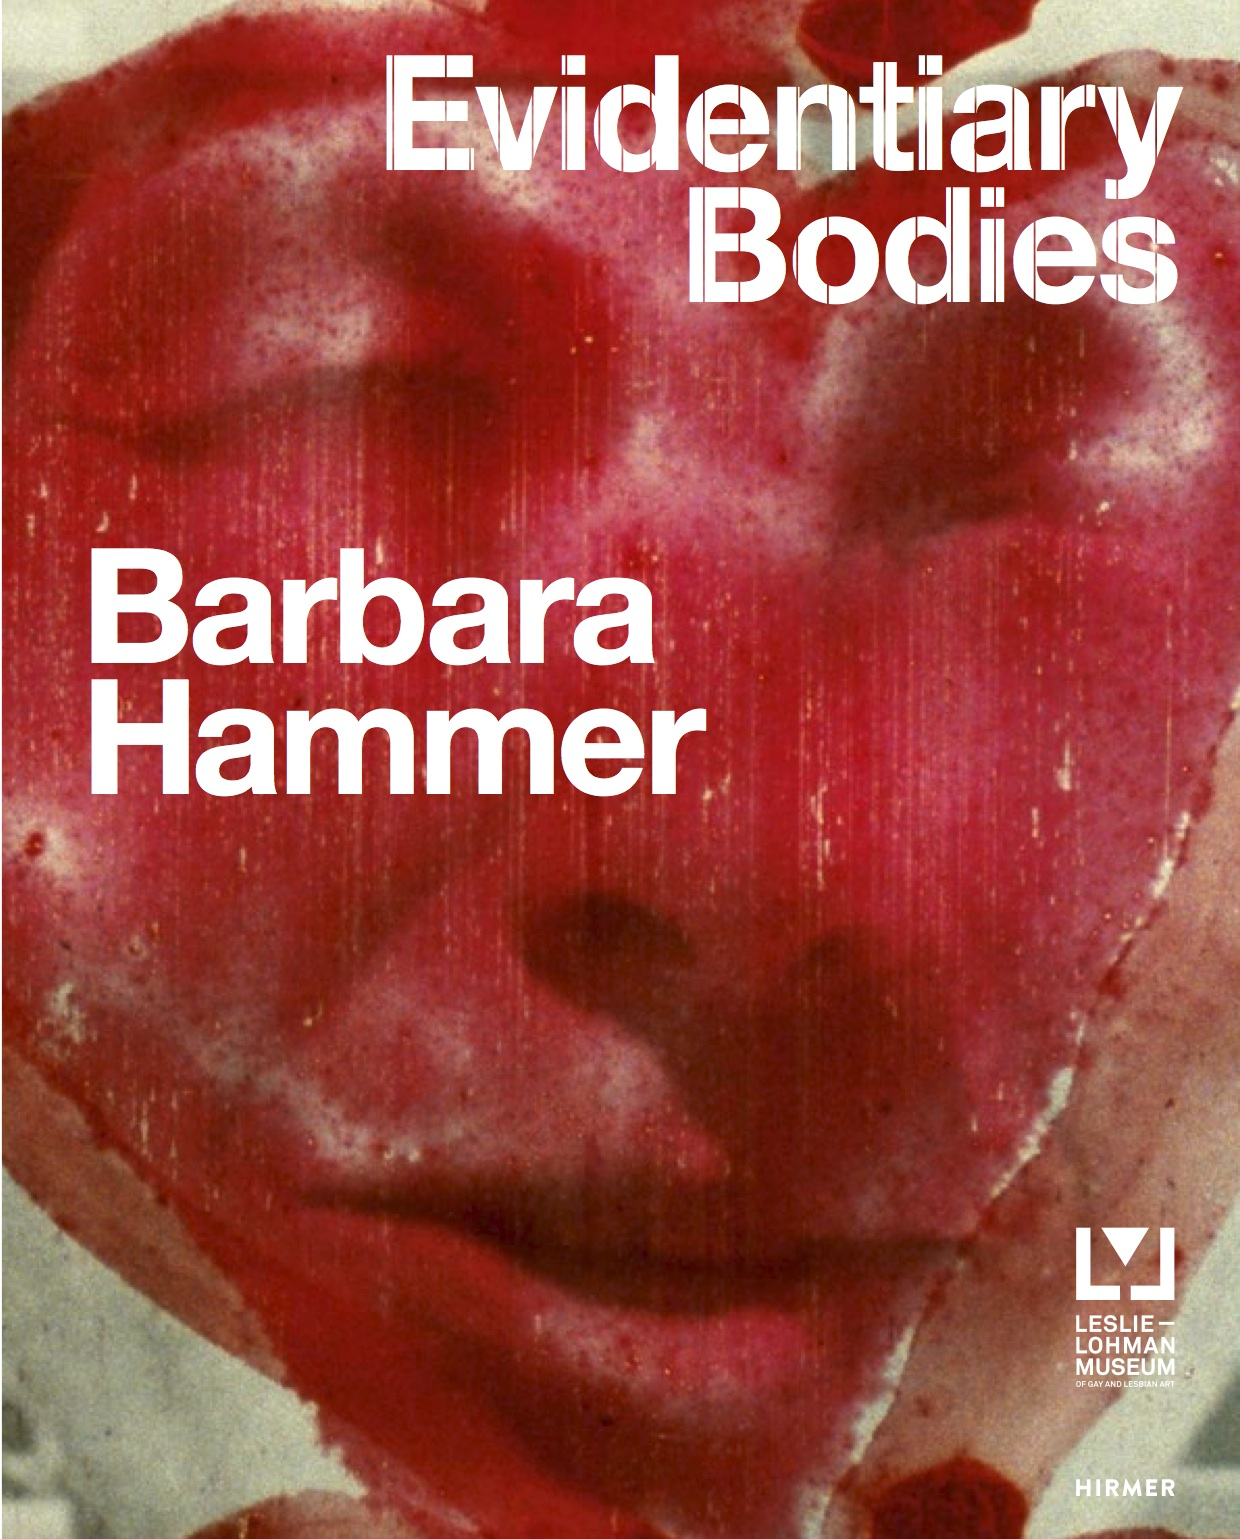 Ways of the Flesh: Barbara Hammer's Vertical Worlds - Barbara Hammer: Evidentiary Bodies. Leslie-Lohman Museum of Gay and Lesbian Art (2017)